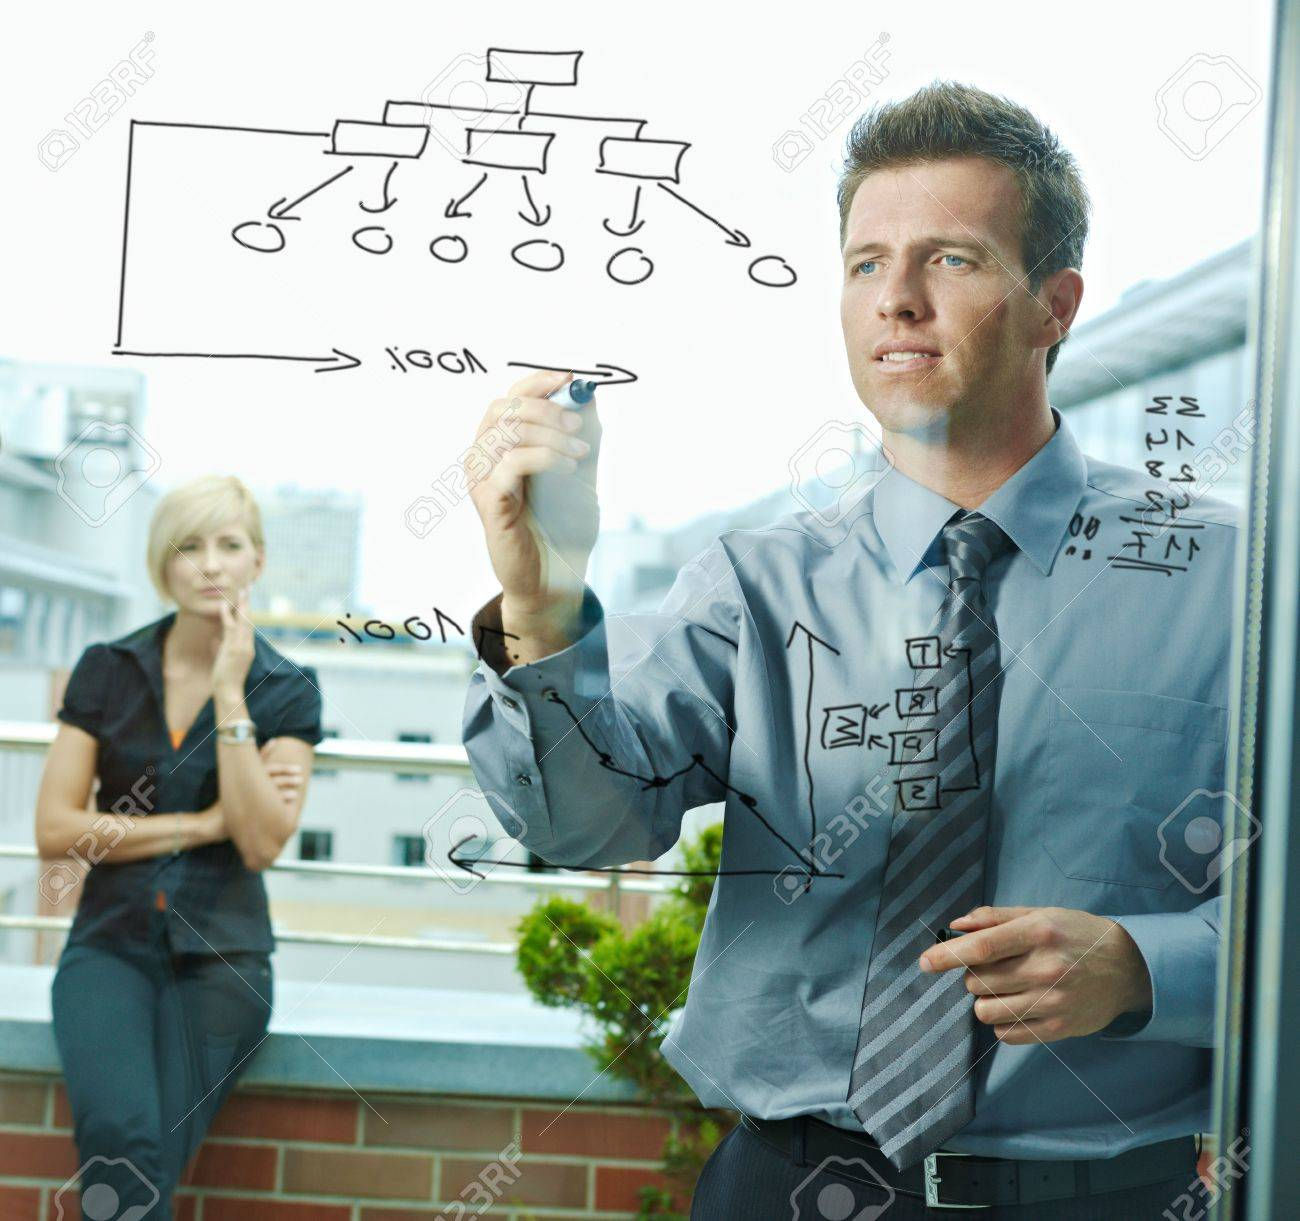 Business team planning, businessman thinking drawing diagram on window. Outdoor of office on terrace. Stock Photo - 6254387